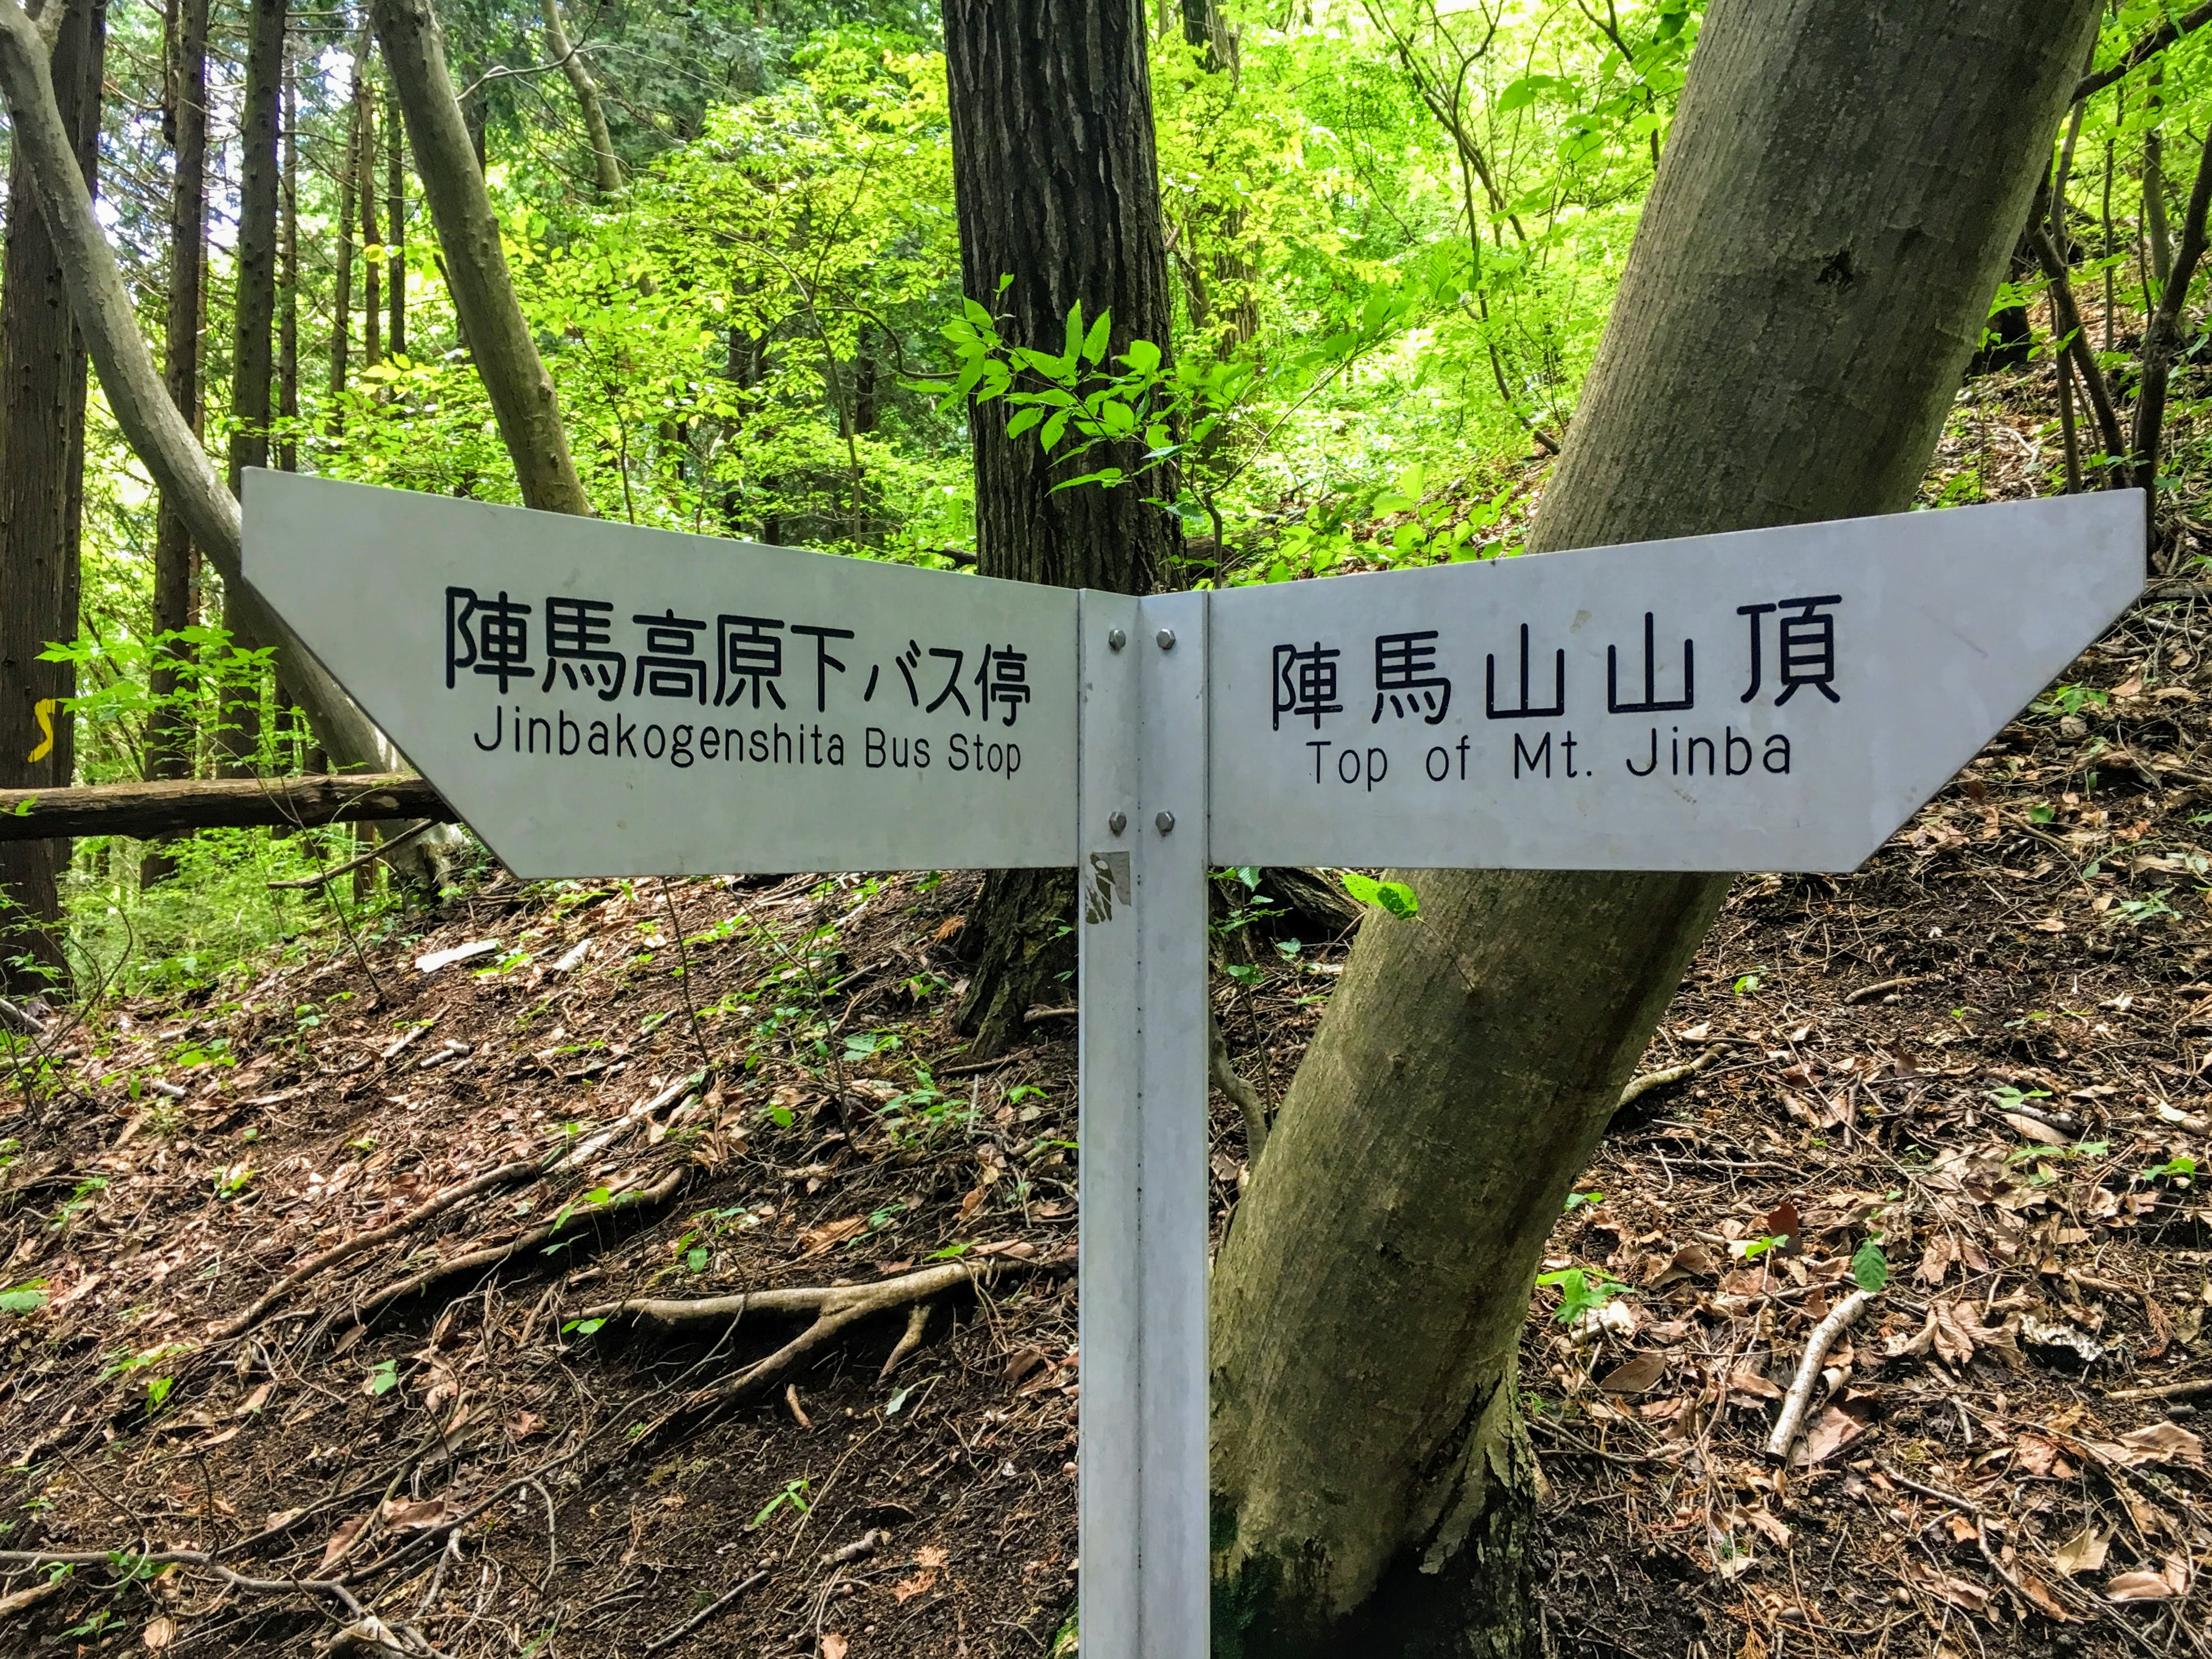 An Insider's Guide To Hiking Mt. Jinba